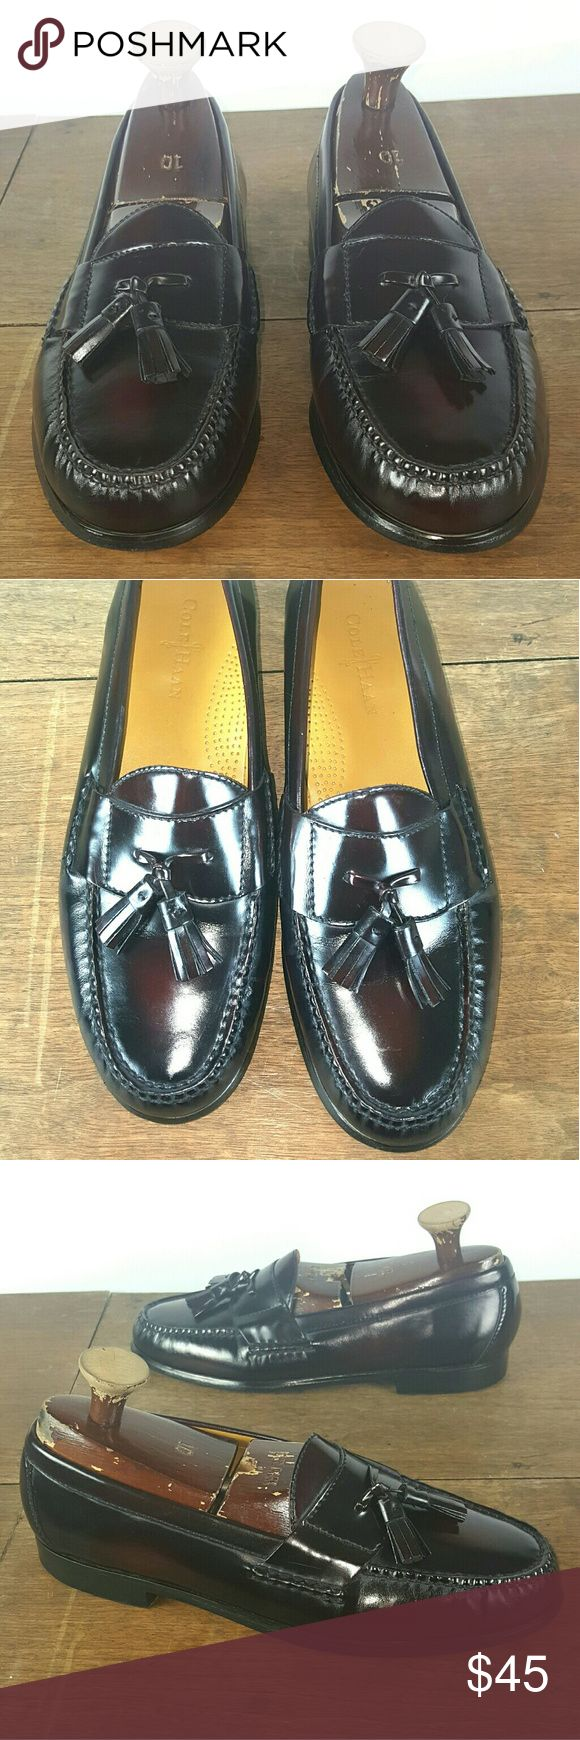 Cole Haan Men's Brown Loafers,  Sz 10D Pre-owned Cole Haan Men's Brown Leather Loafers in great condition,  size 10D. Questions and offers are welcome. Cole Haan  Shoes Loafers & Slip-Ons